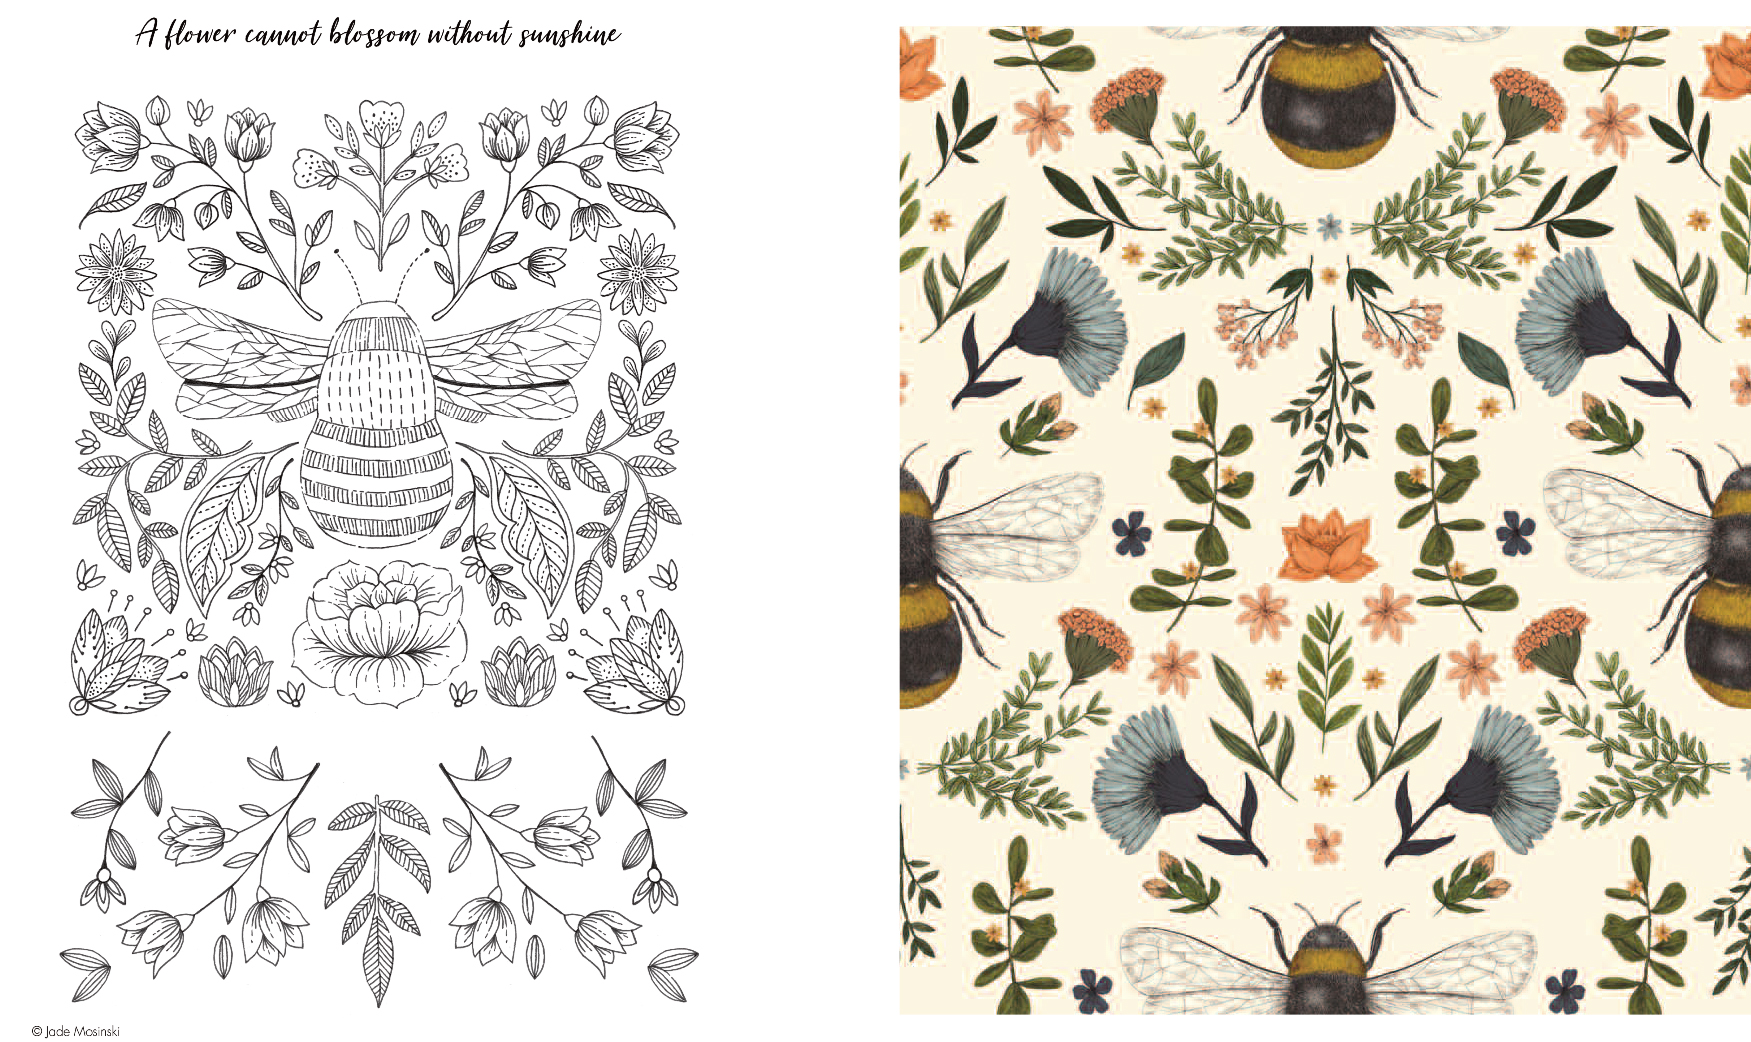 Above: Jade Mosinski's artwork on a colouring in page as well as on a Museums & Galleries card (featured).